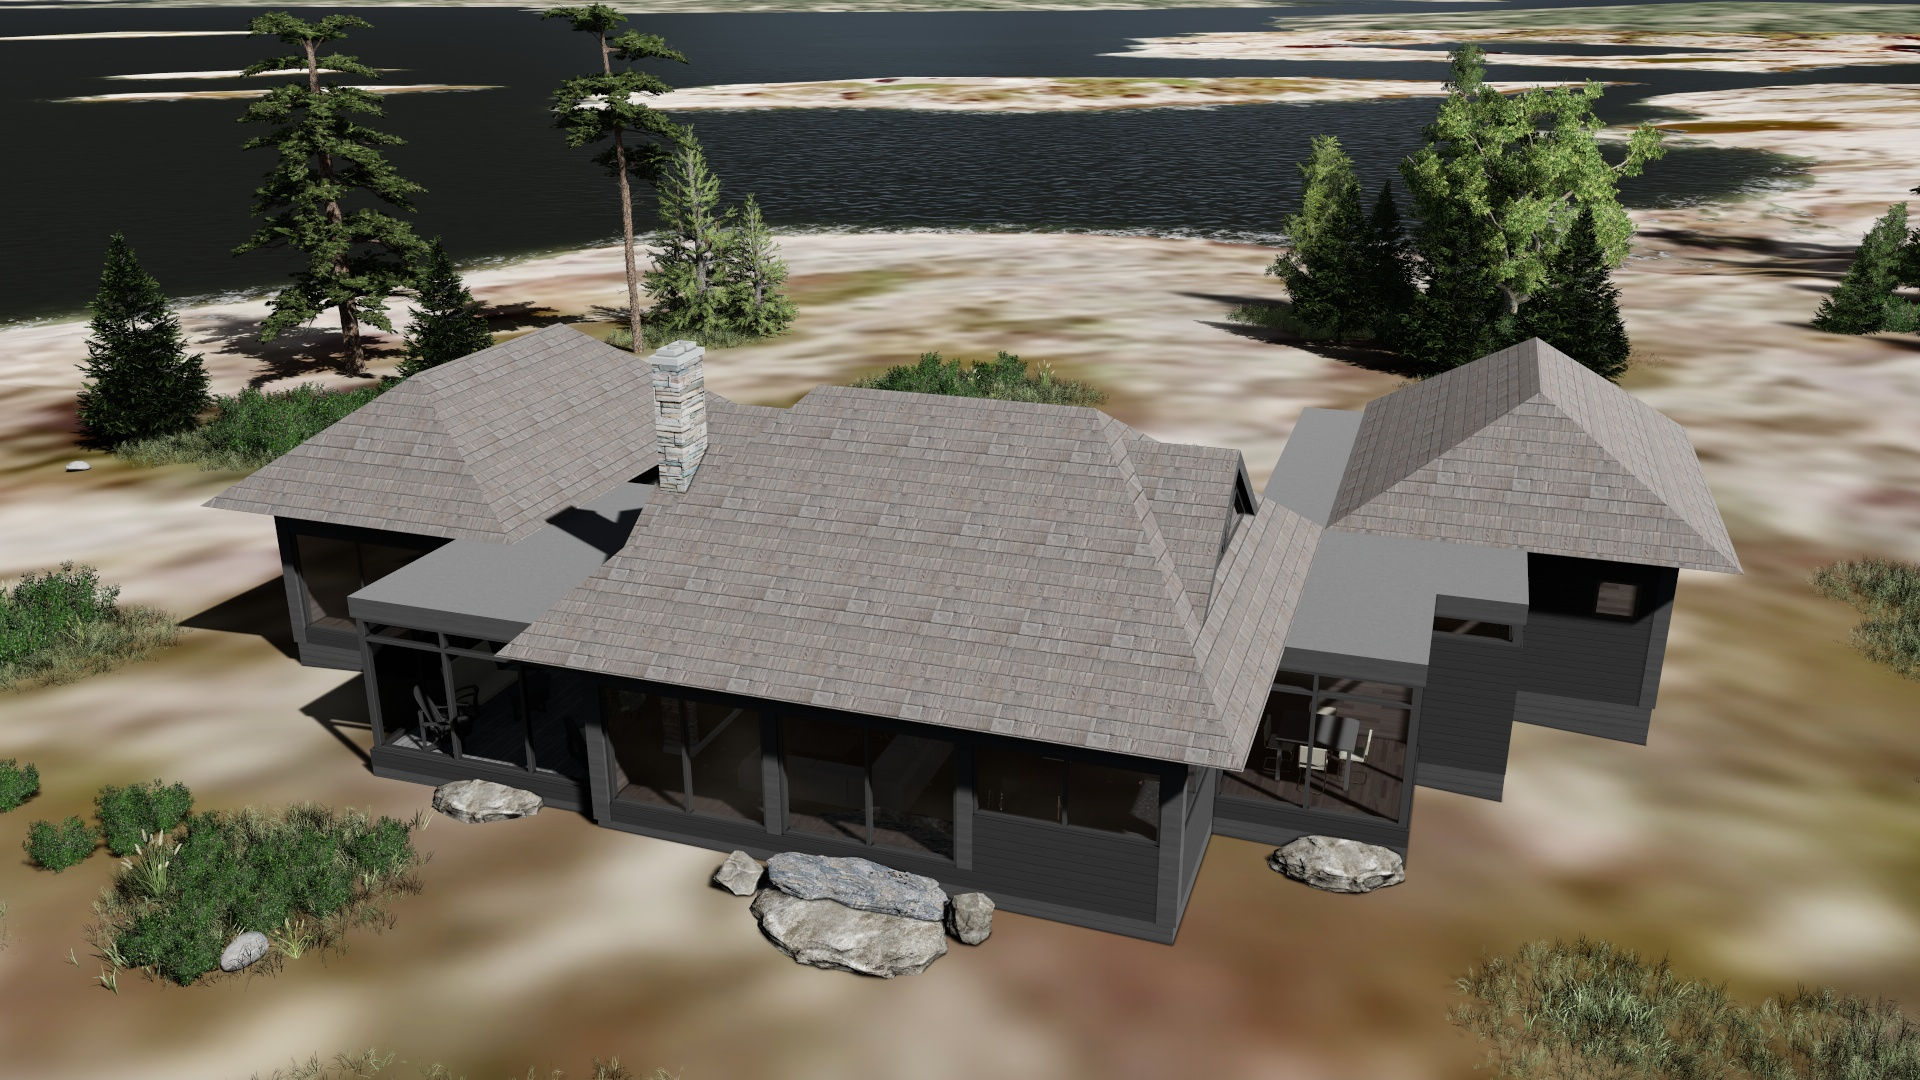 OPTION 3 - HIP ROOFS